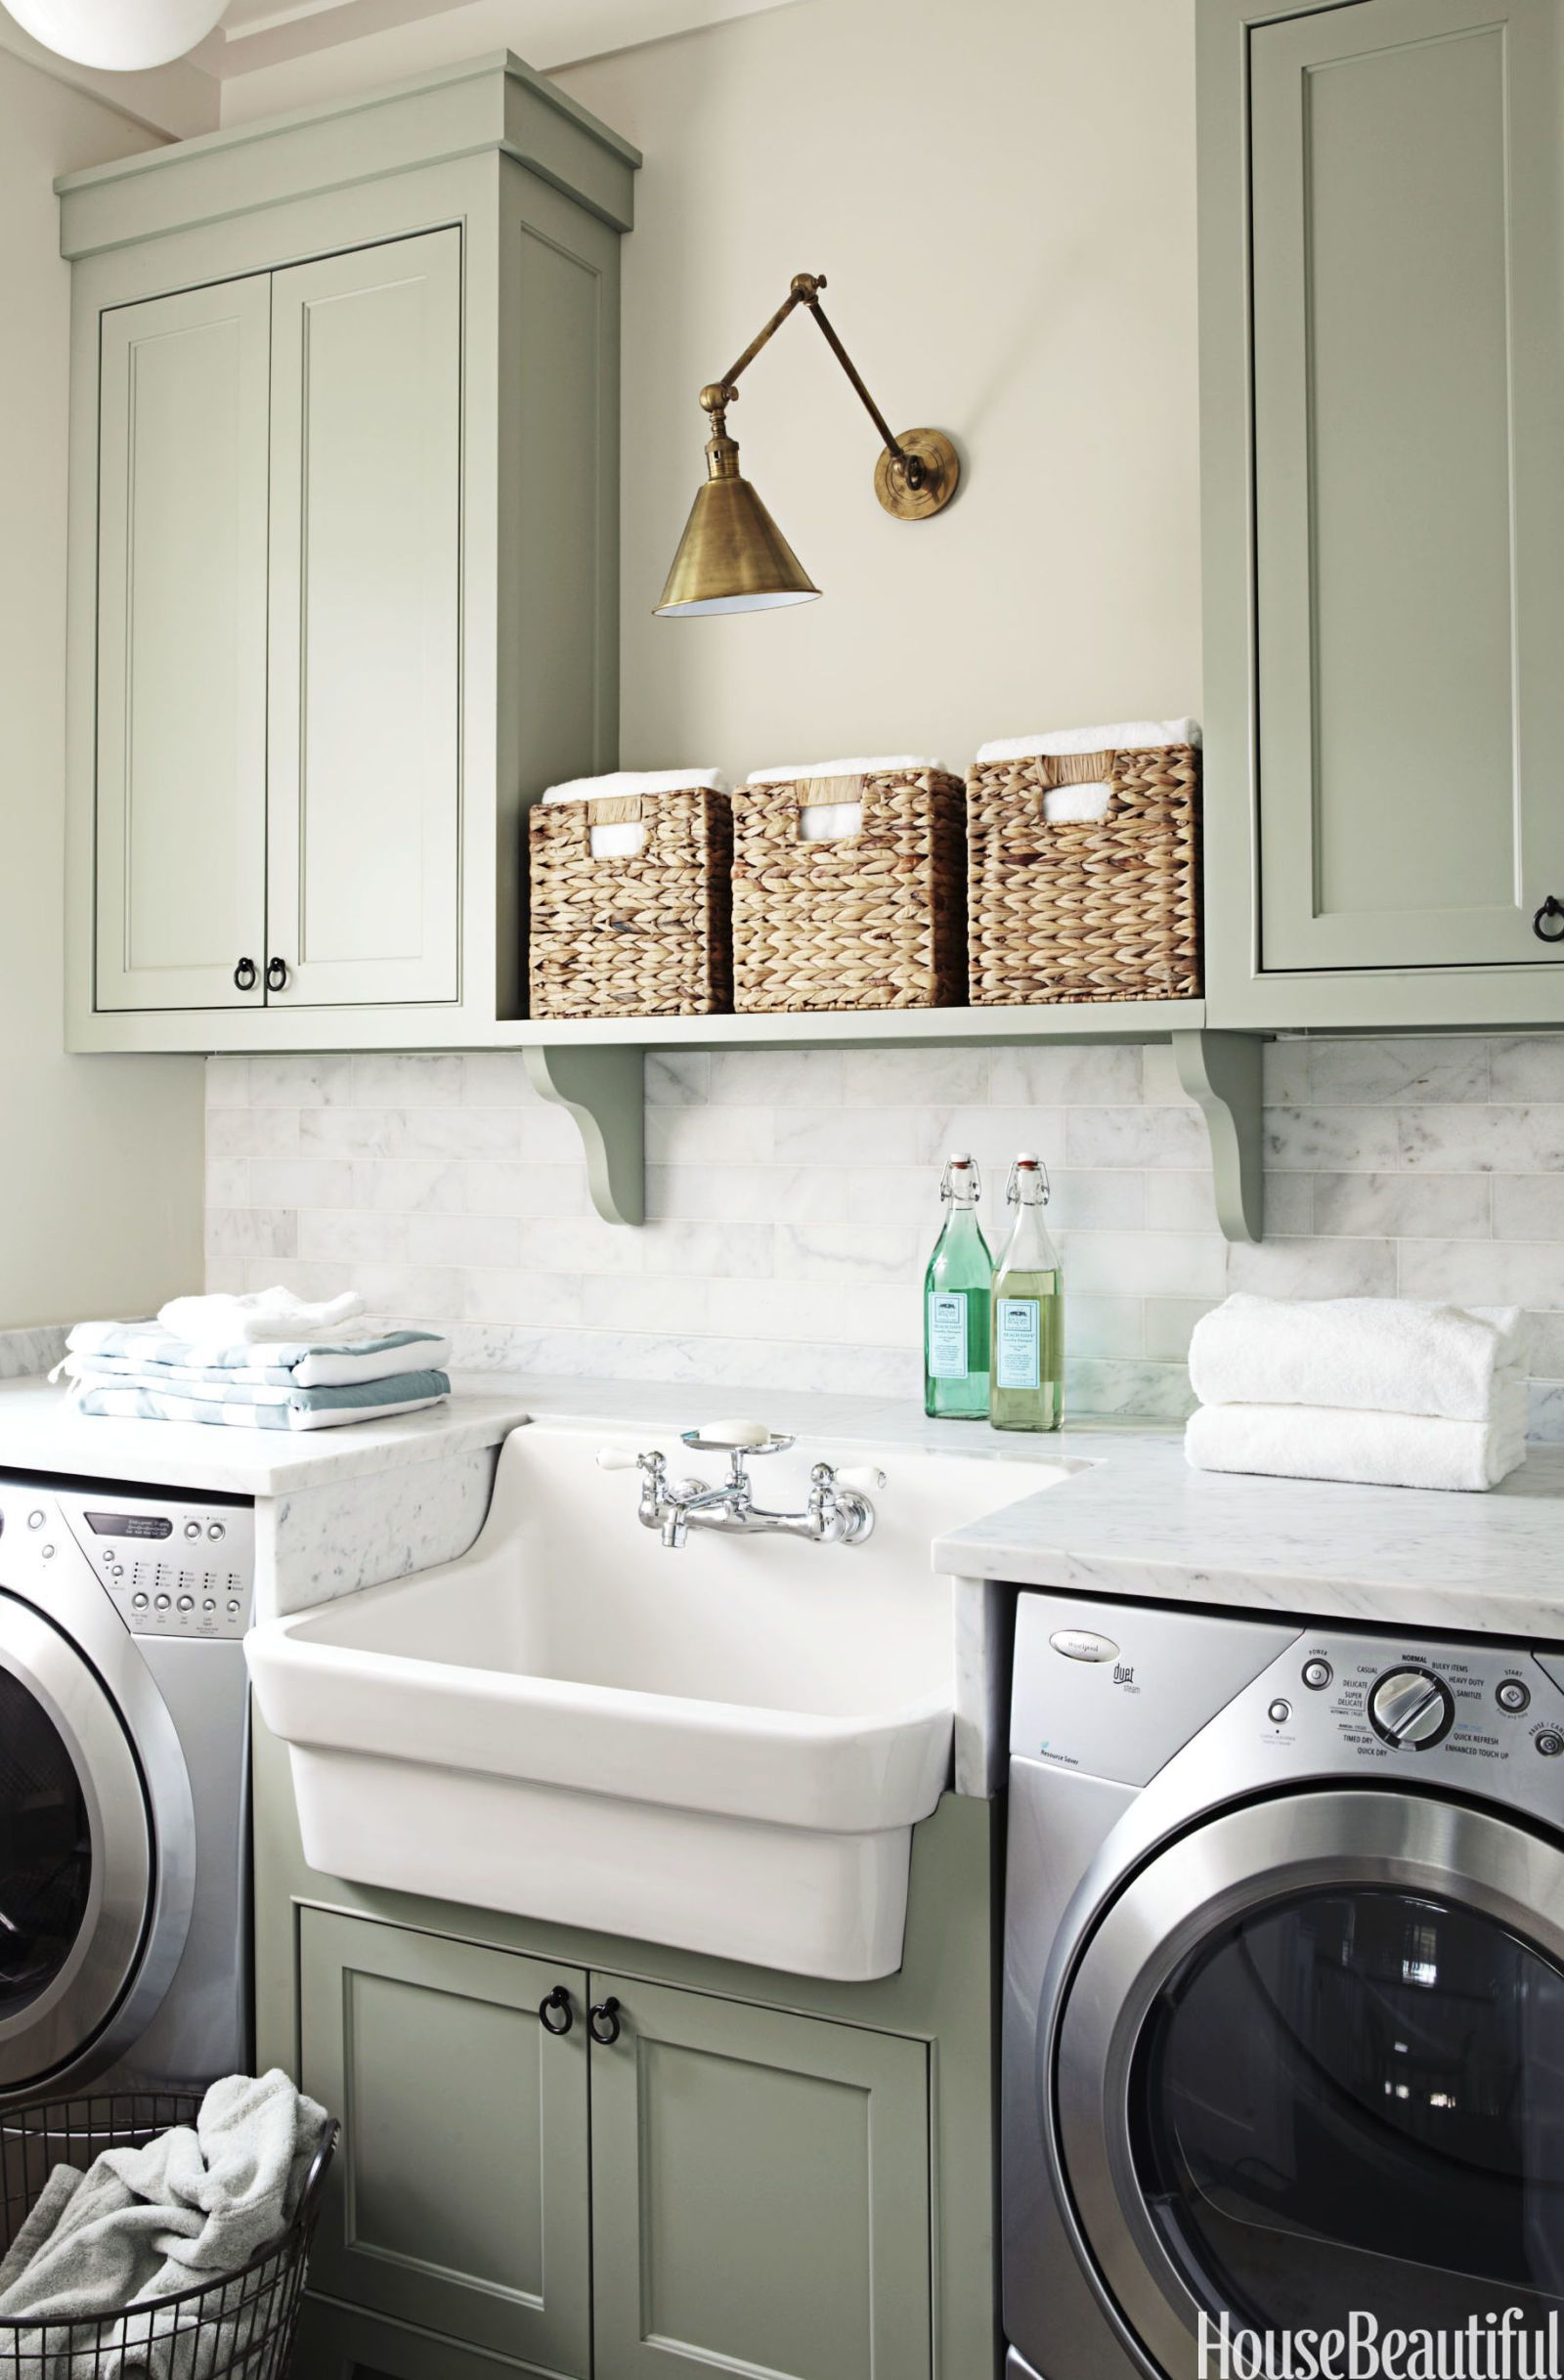 15 Small Laundry Room Ideas - Small Laundry Room Storage Tips